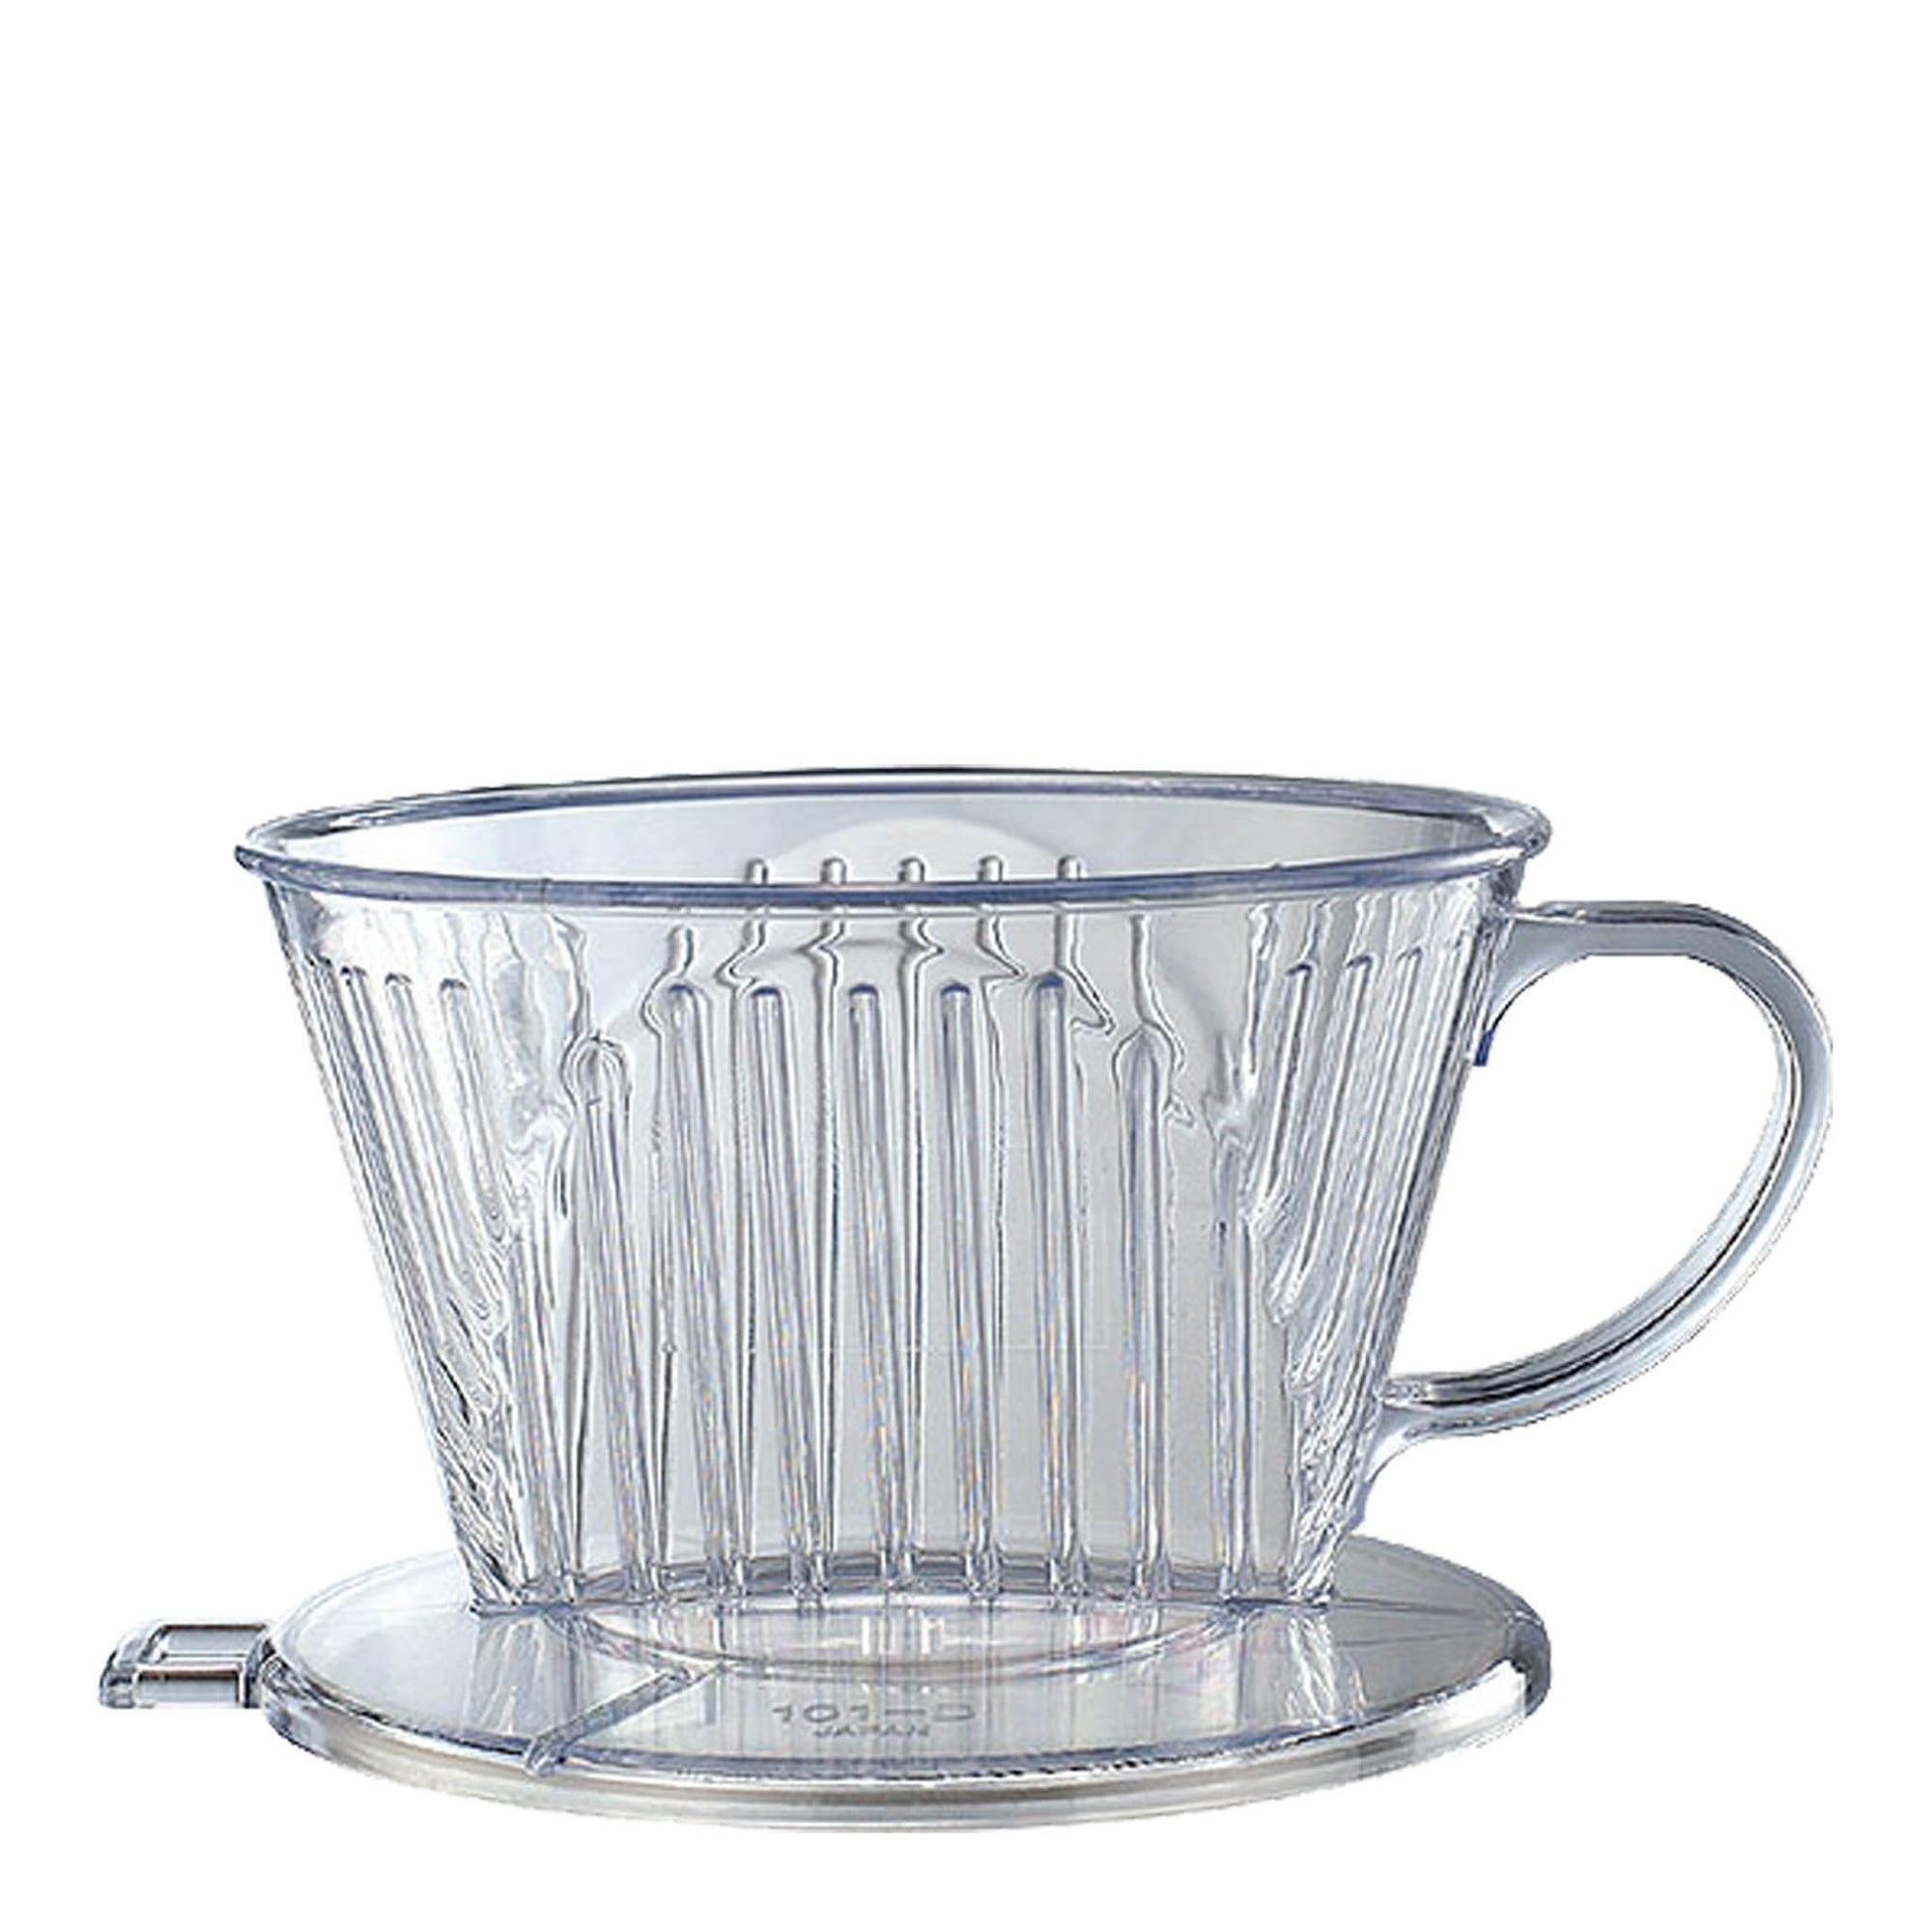 Tiamo Transparent Filter 102 - Espresso Gear